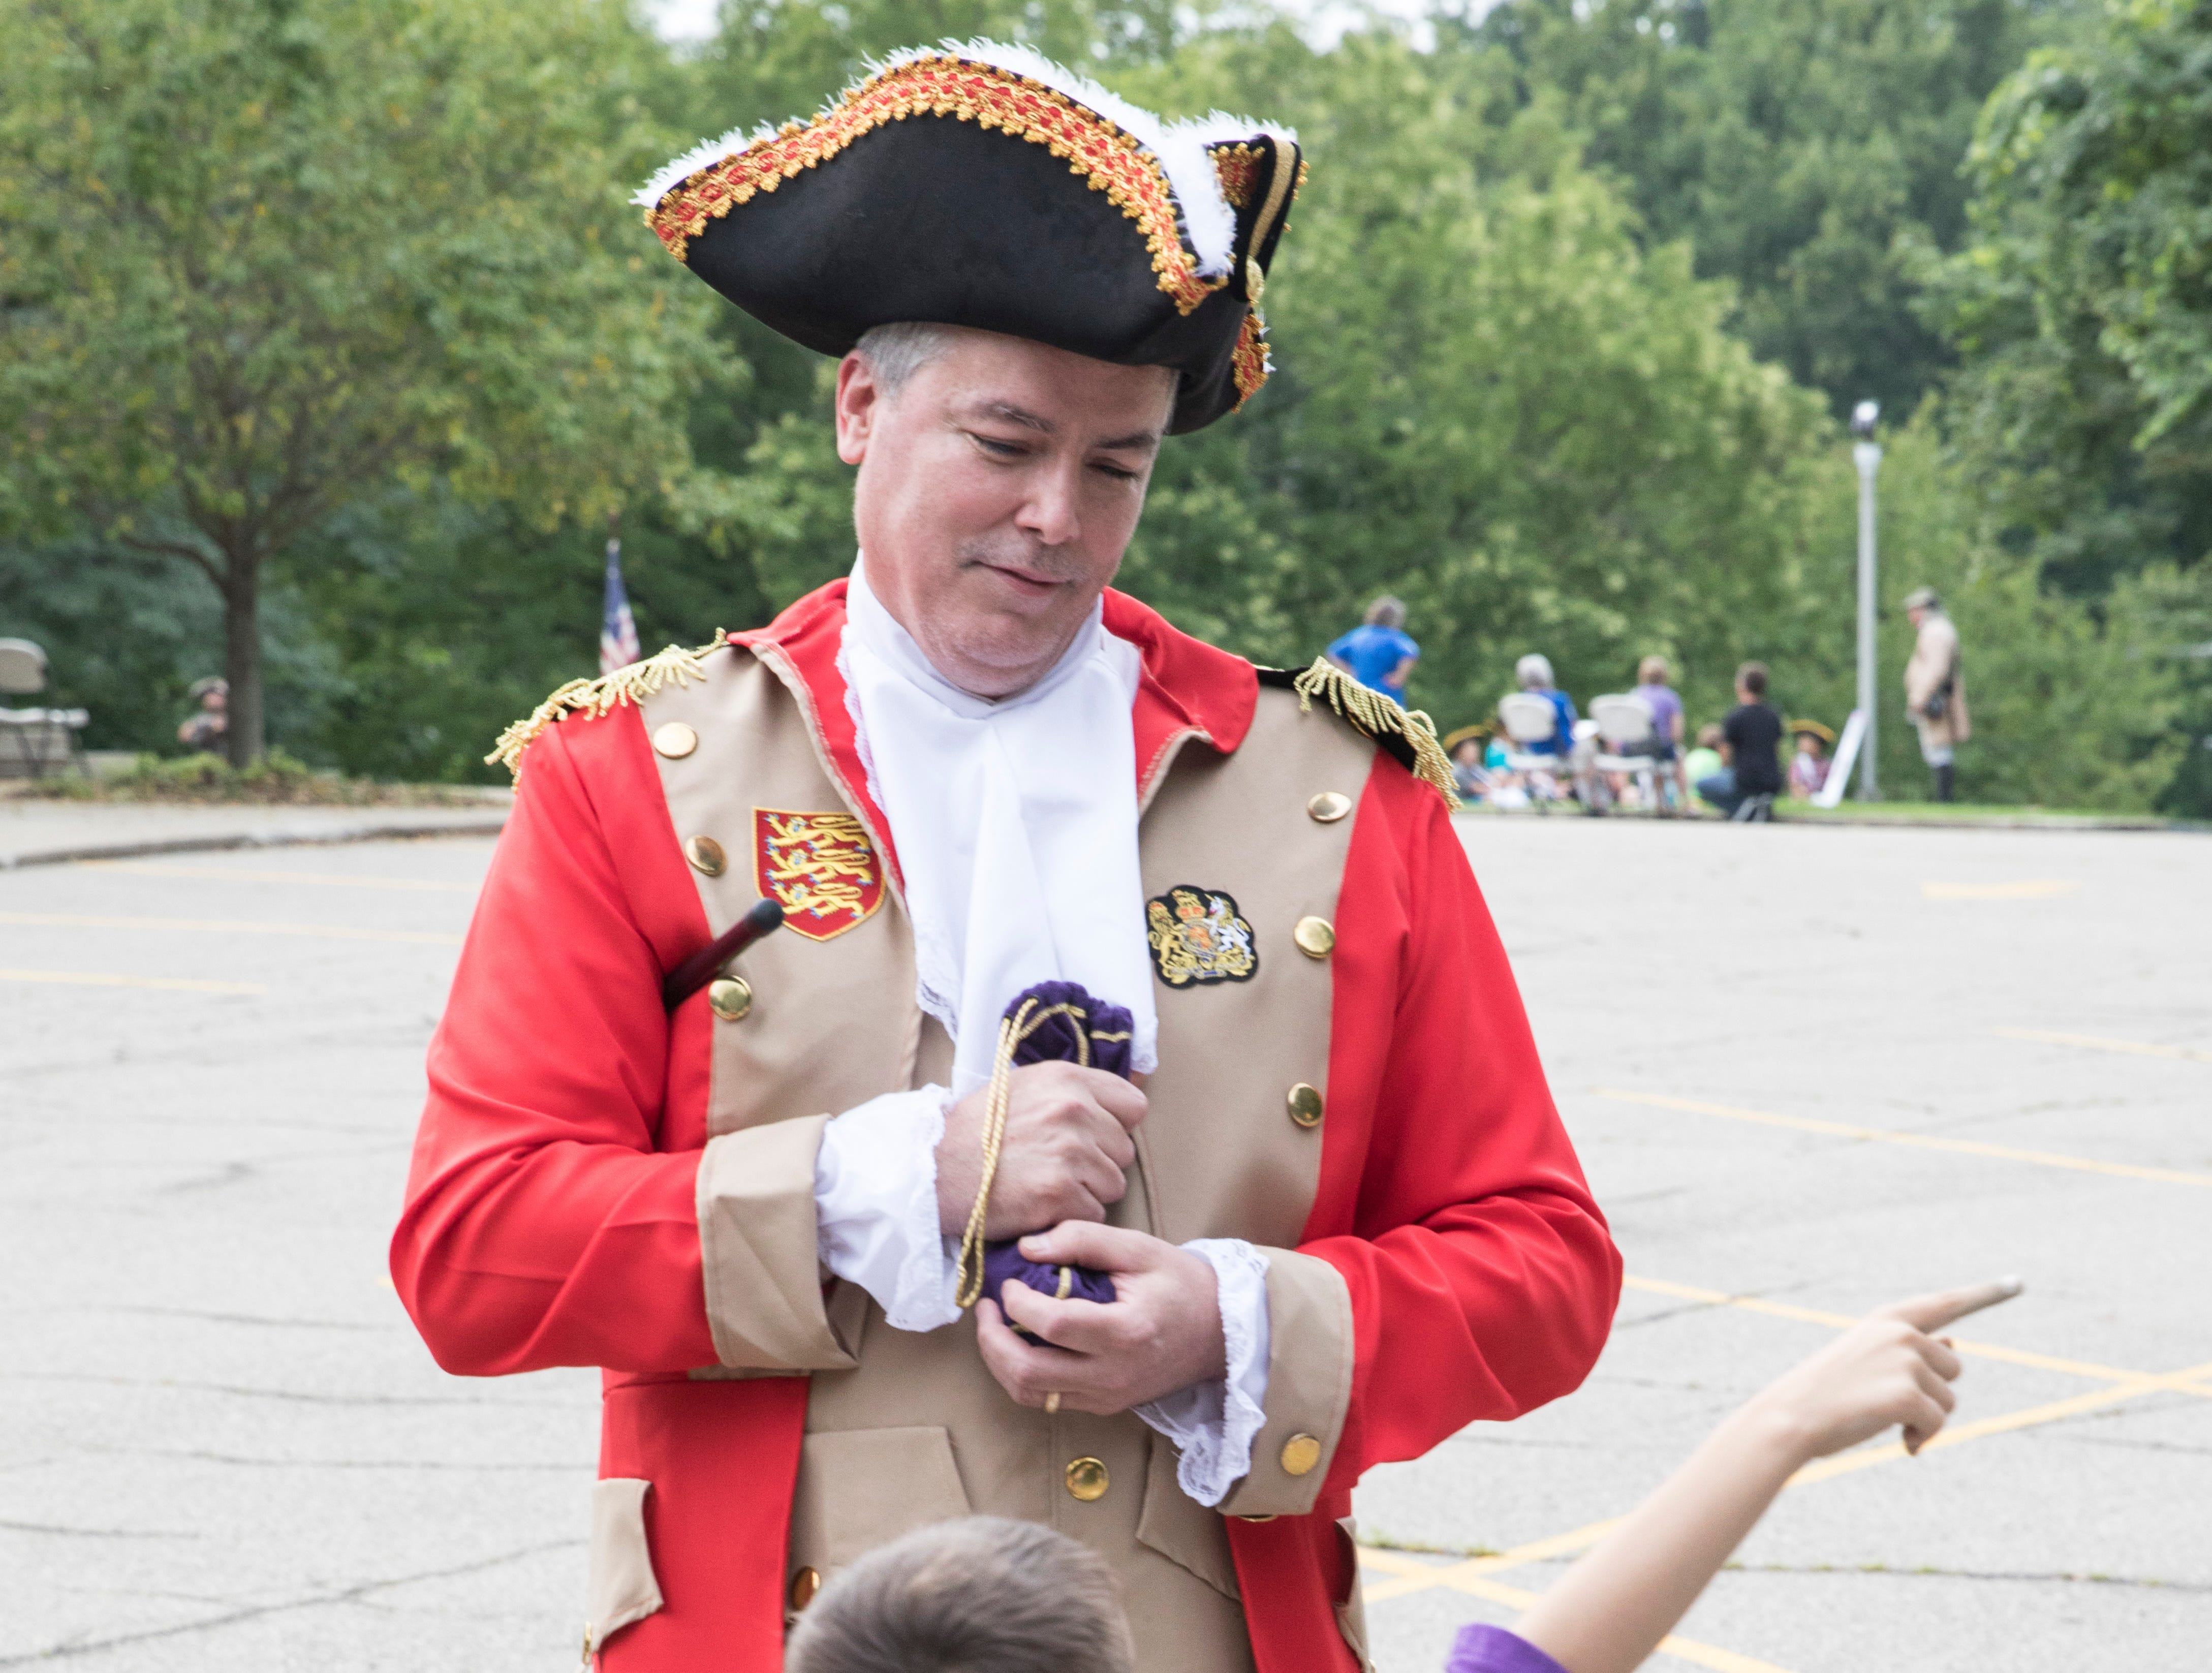 Mark Yanko tells King George III, re-enacted by Tim Hill, to return the people's money and go back to England.  Through re-enactments, stories, and games, Liberty Camp's mission was to educate children in a fun and memorable way.